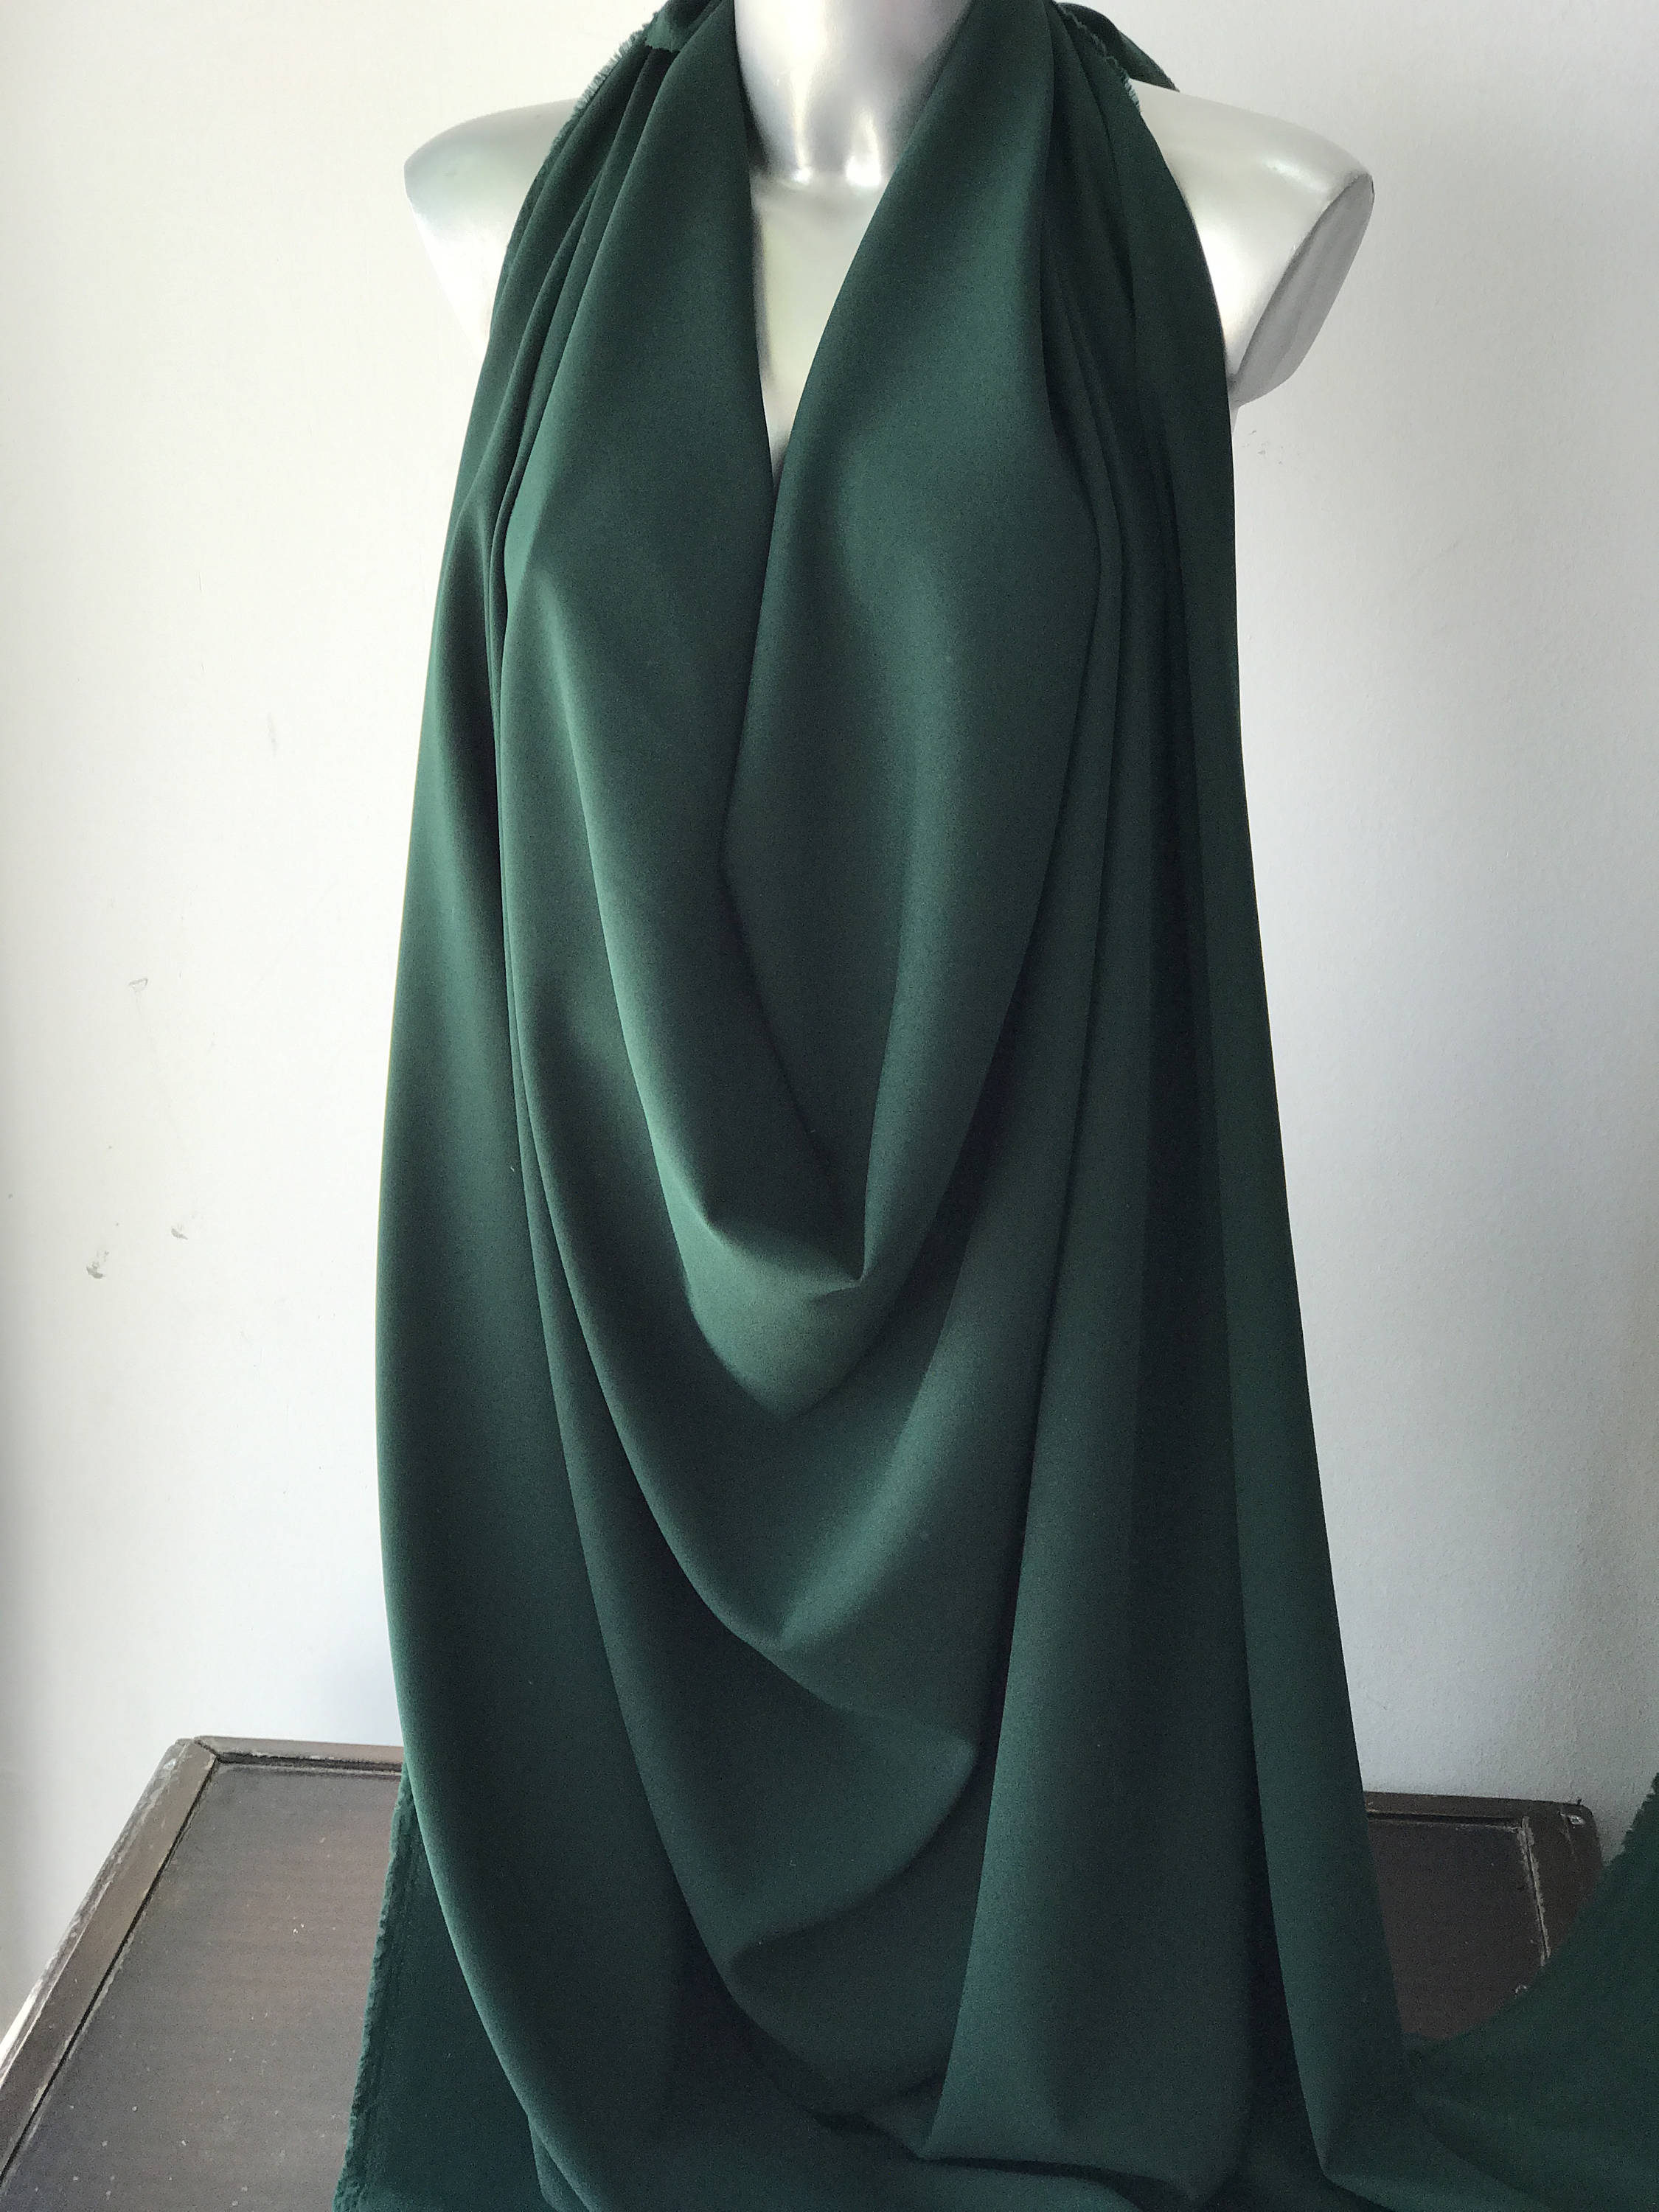 Green crepe back satin fabric 2 way stretch polyester spandex 150cm 60 inches